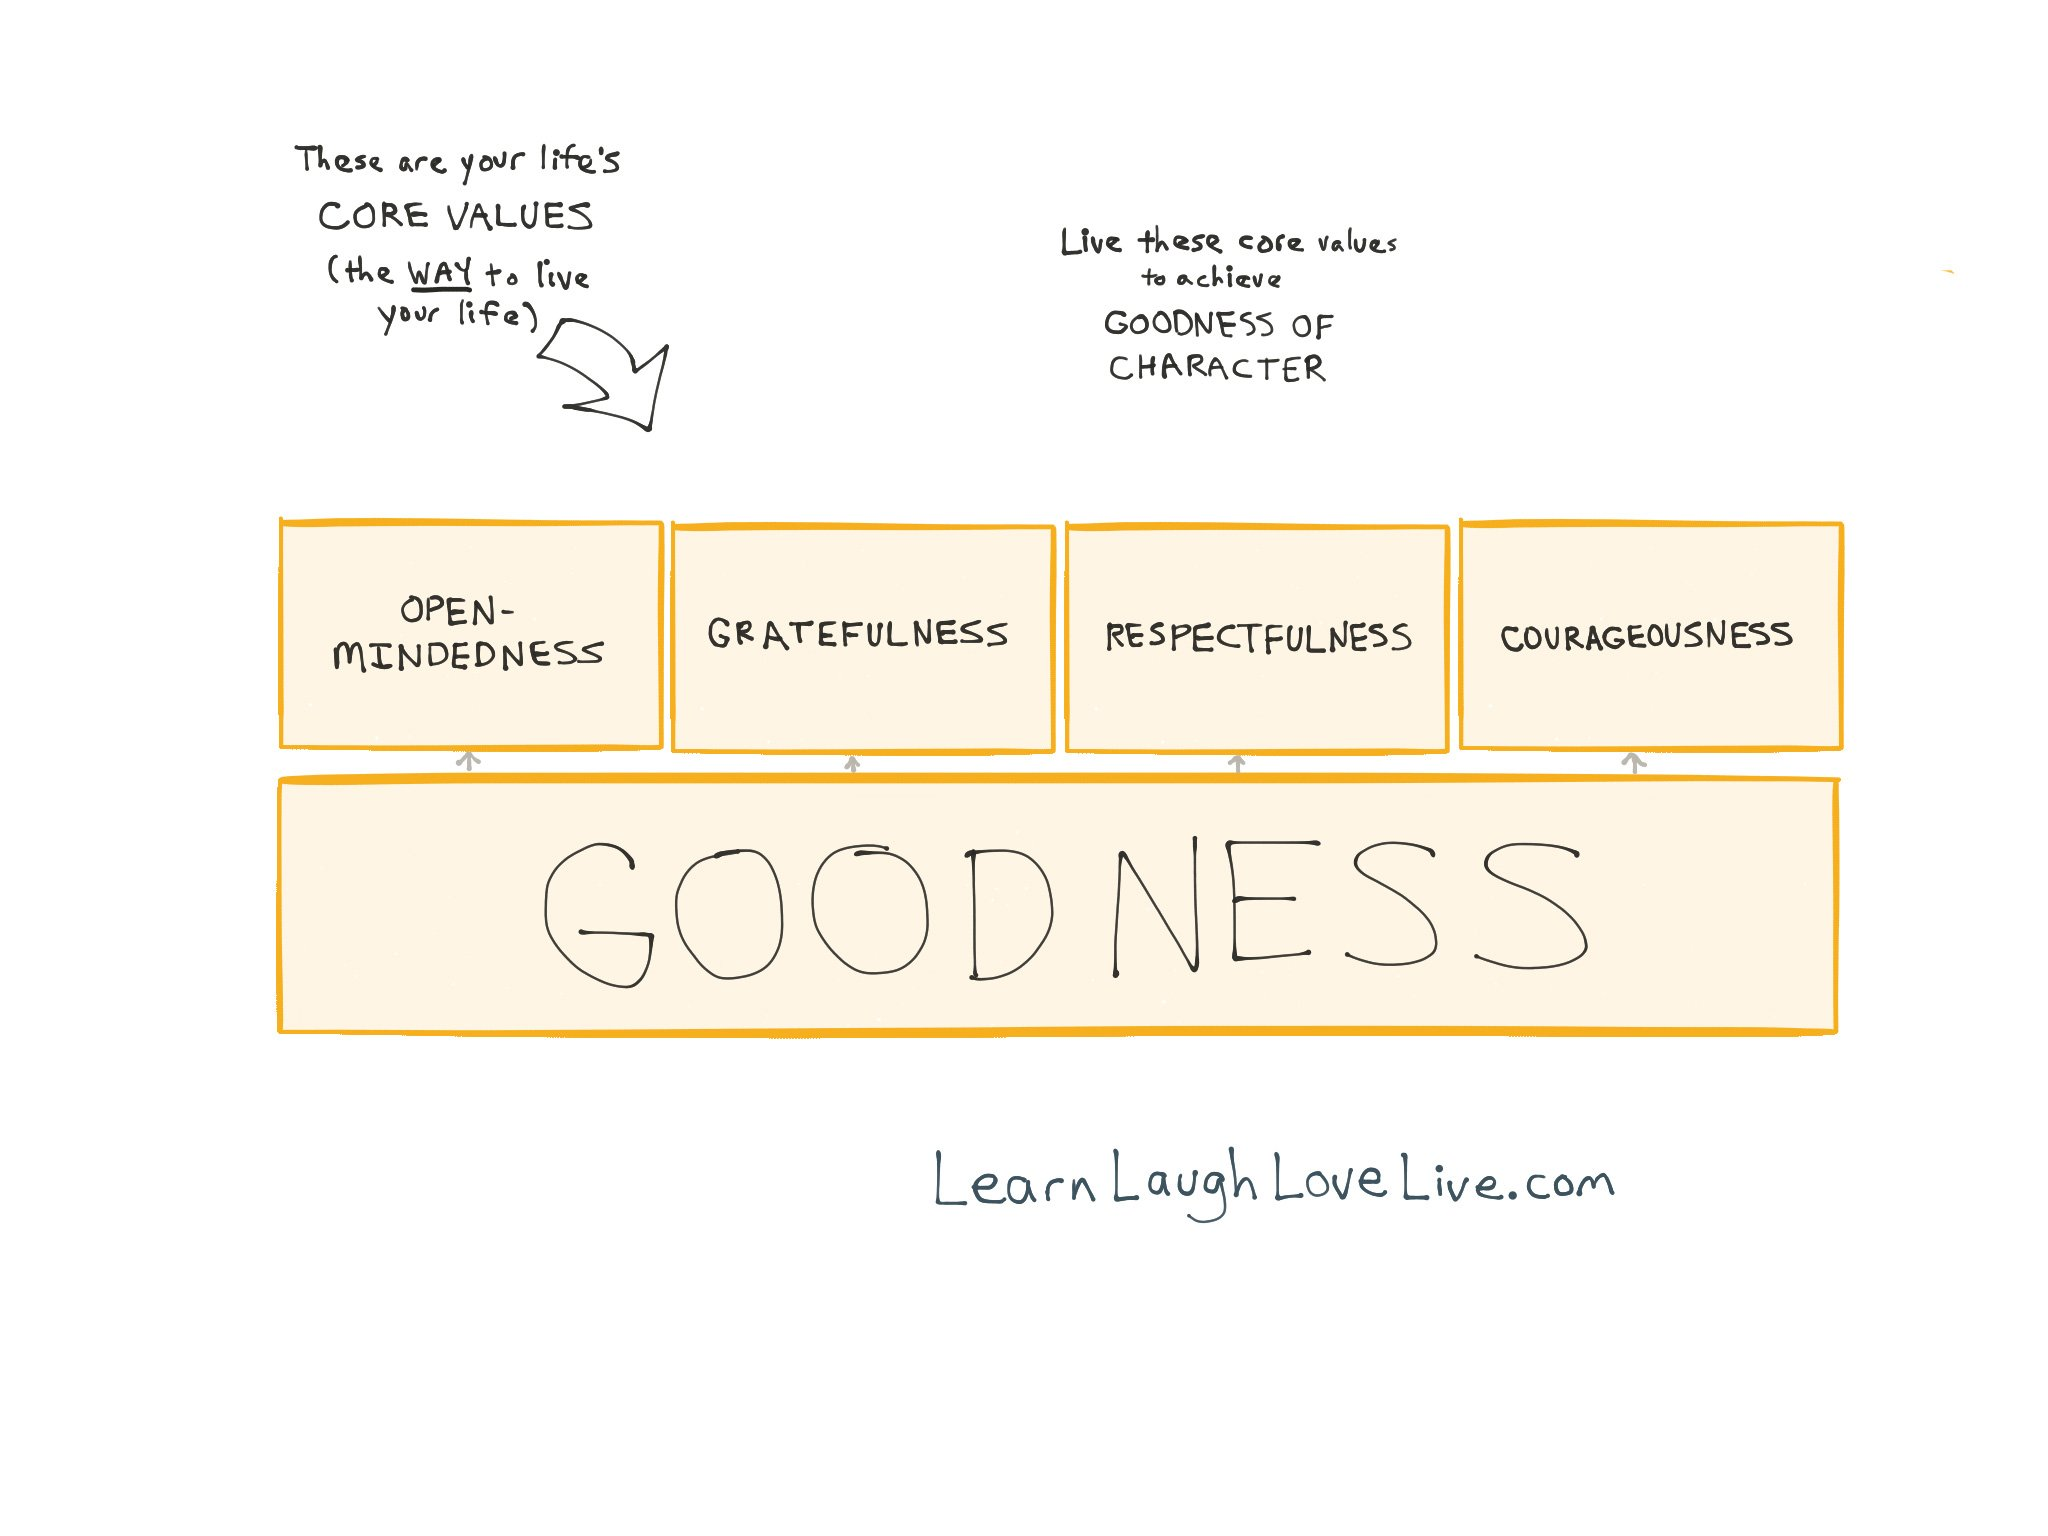 Concepts - Philosophy - Values - learn laugh love live life LRN LAF LUV LIV LYF